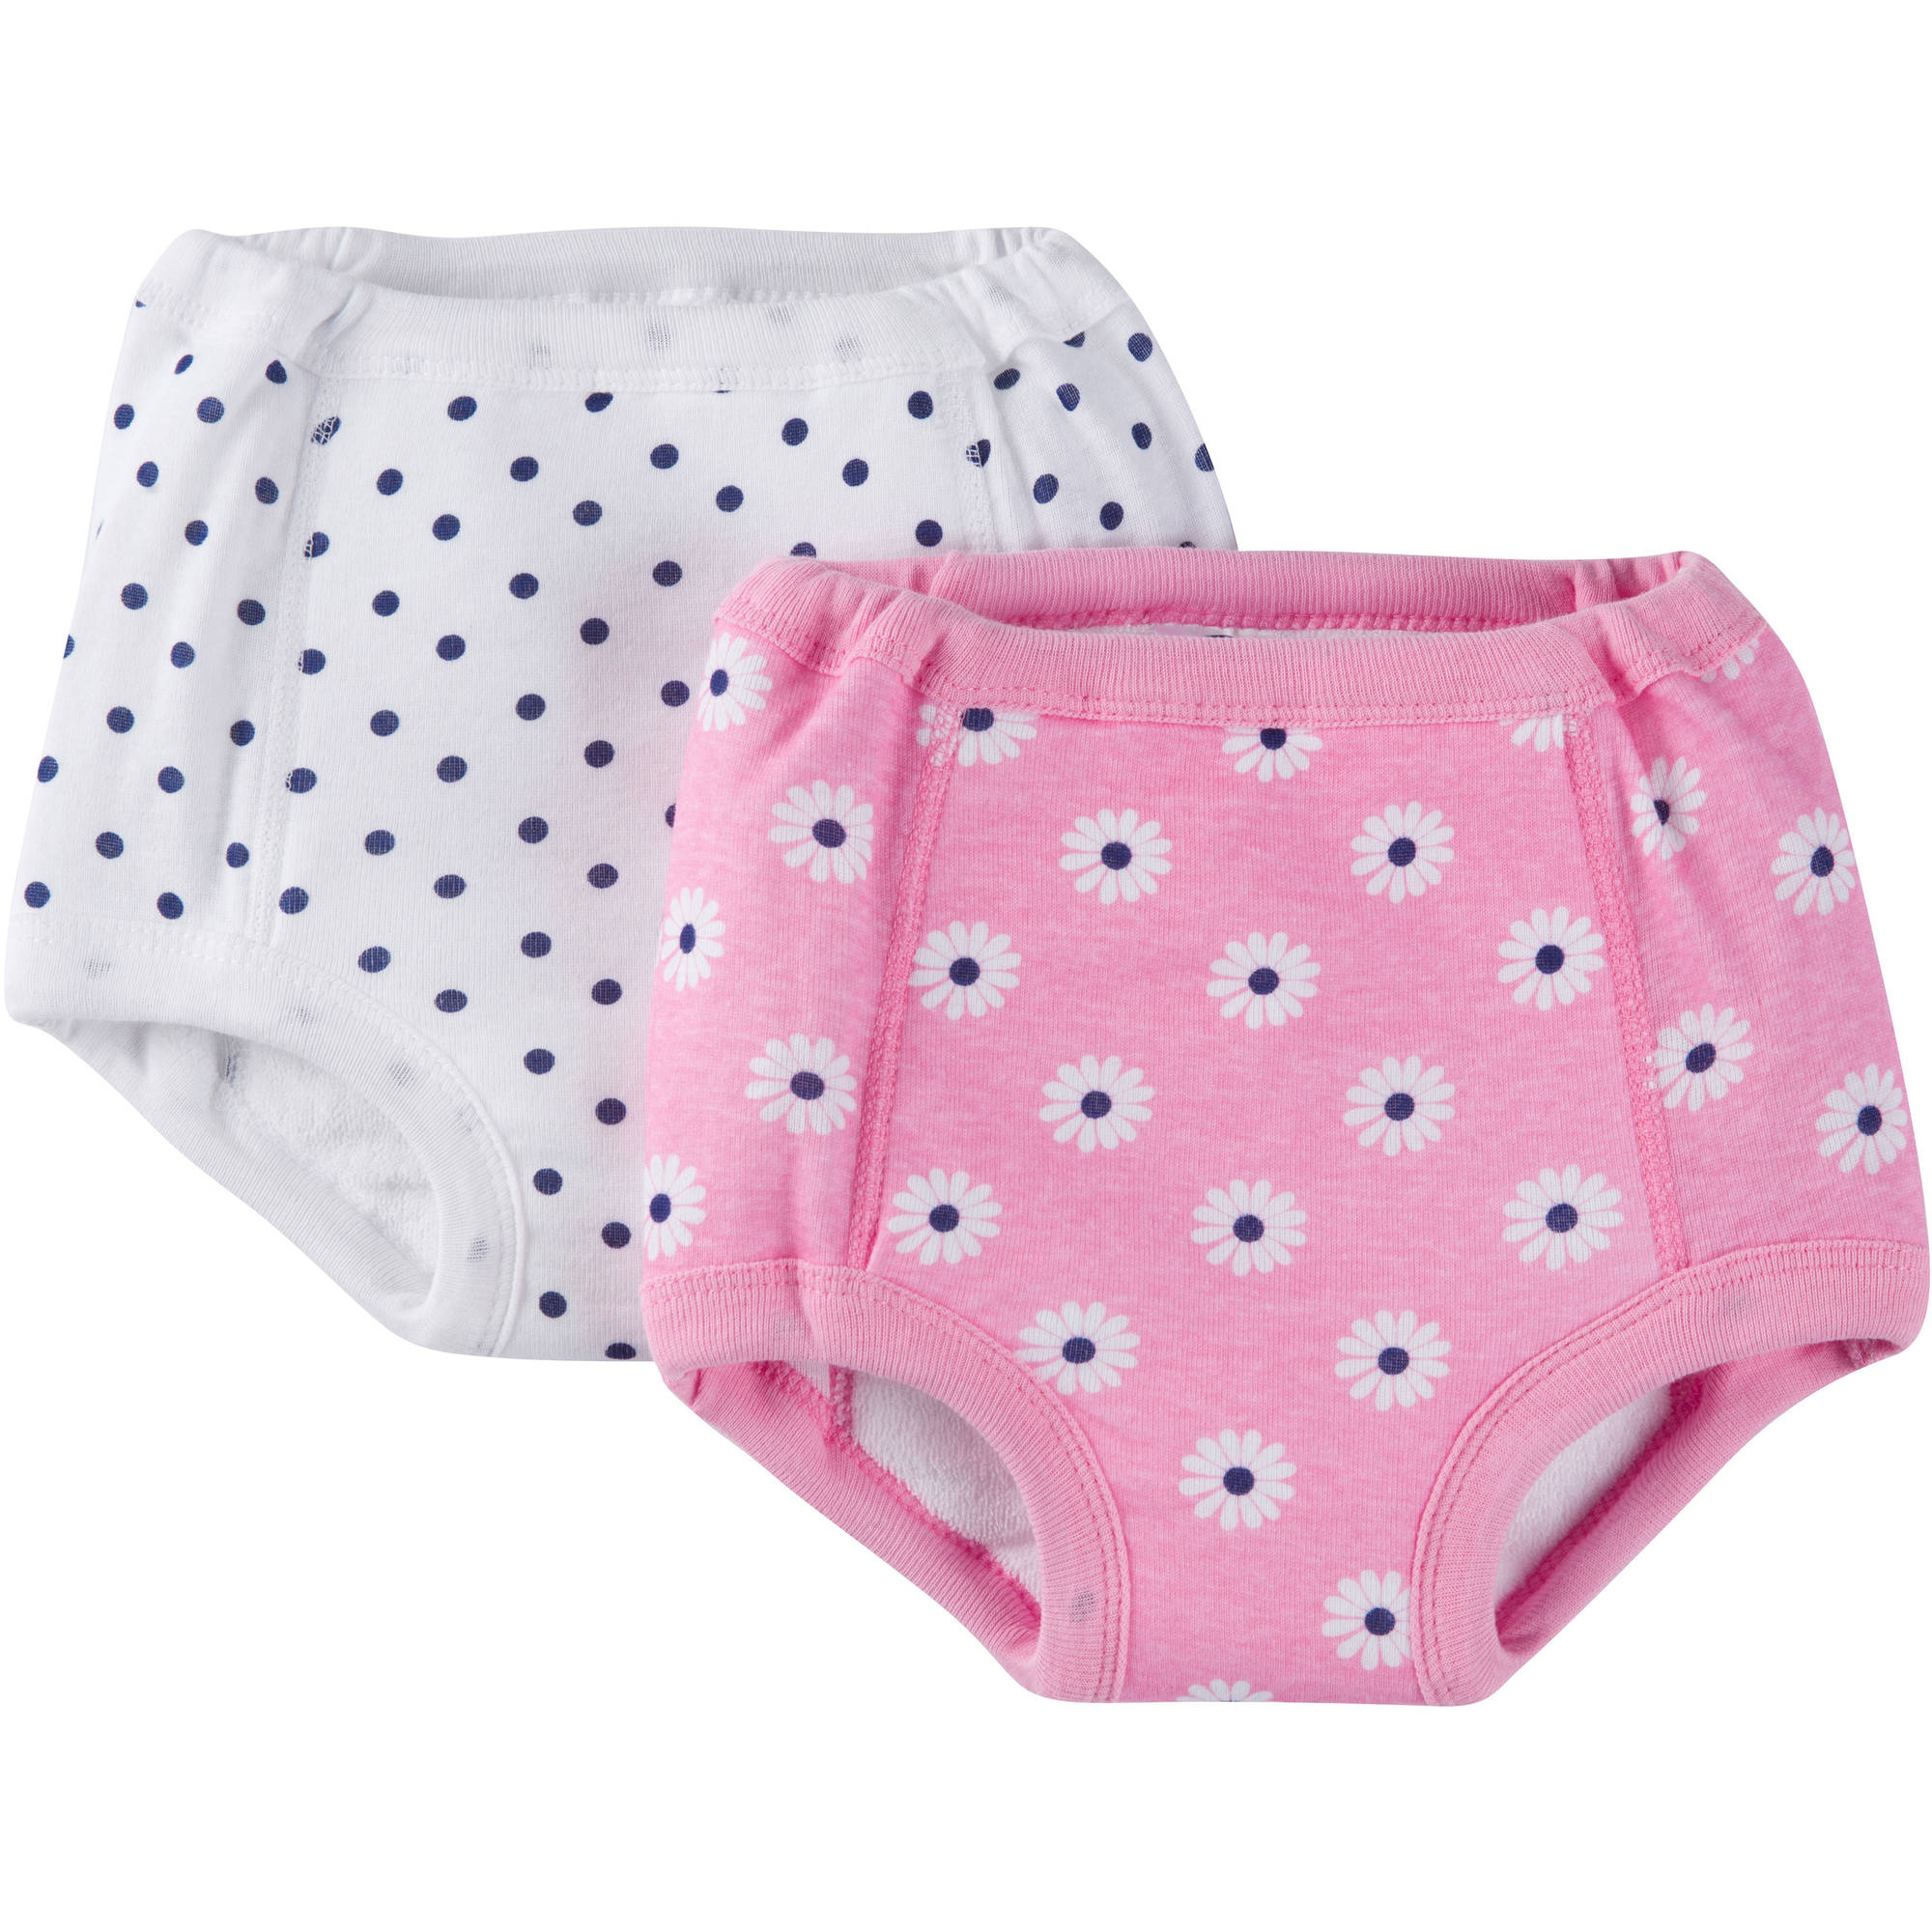 Gerber Baby Toddler Girls Daisy 100% Cotton Training Pants with Peva Lining, 2-Pack Ages 2-3T